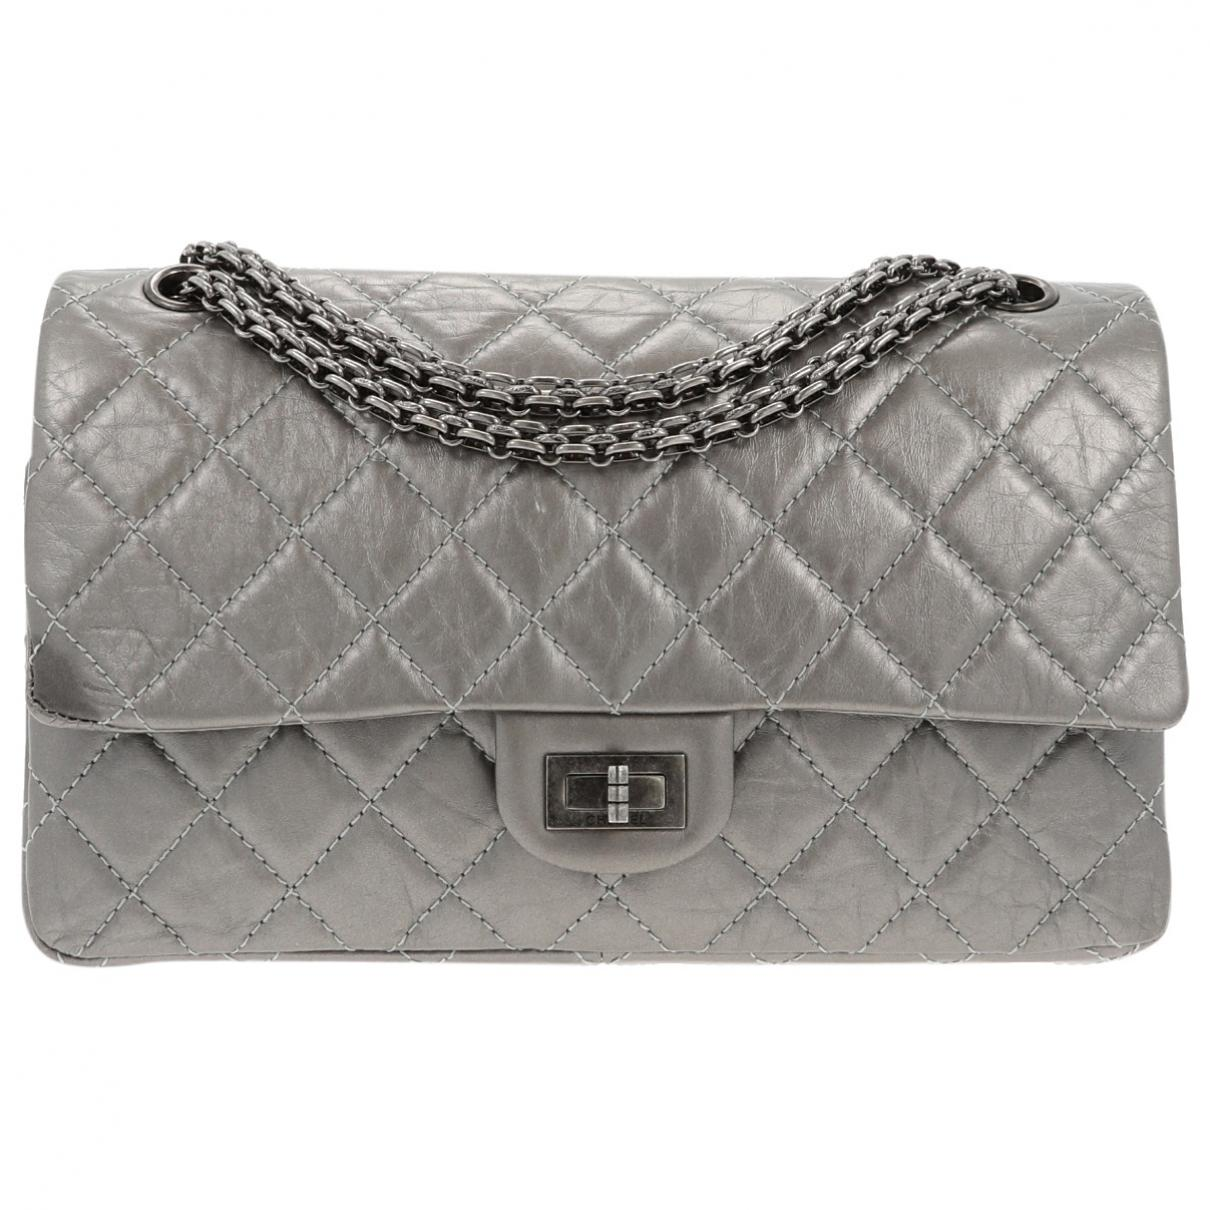 Pre-owned - 2.55 leather crossbody bag Chanel nGFF72Mz3